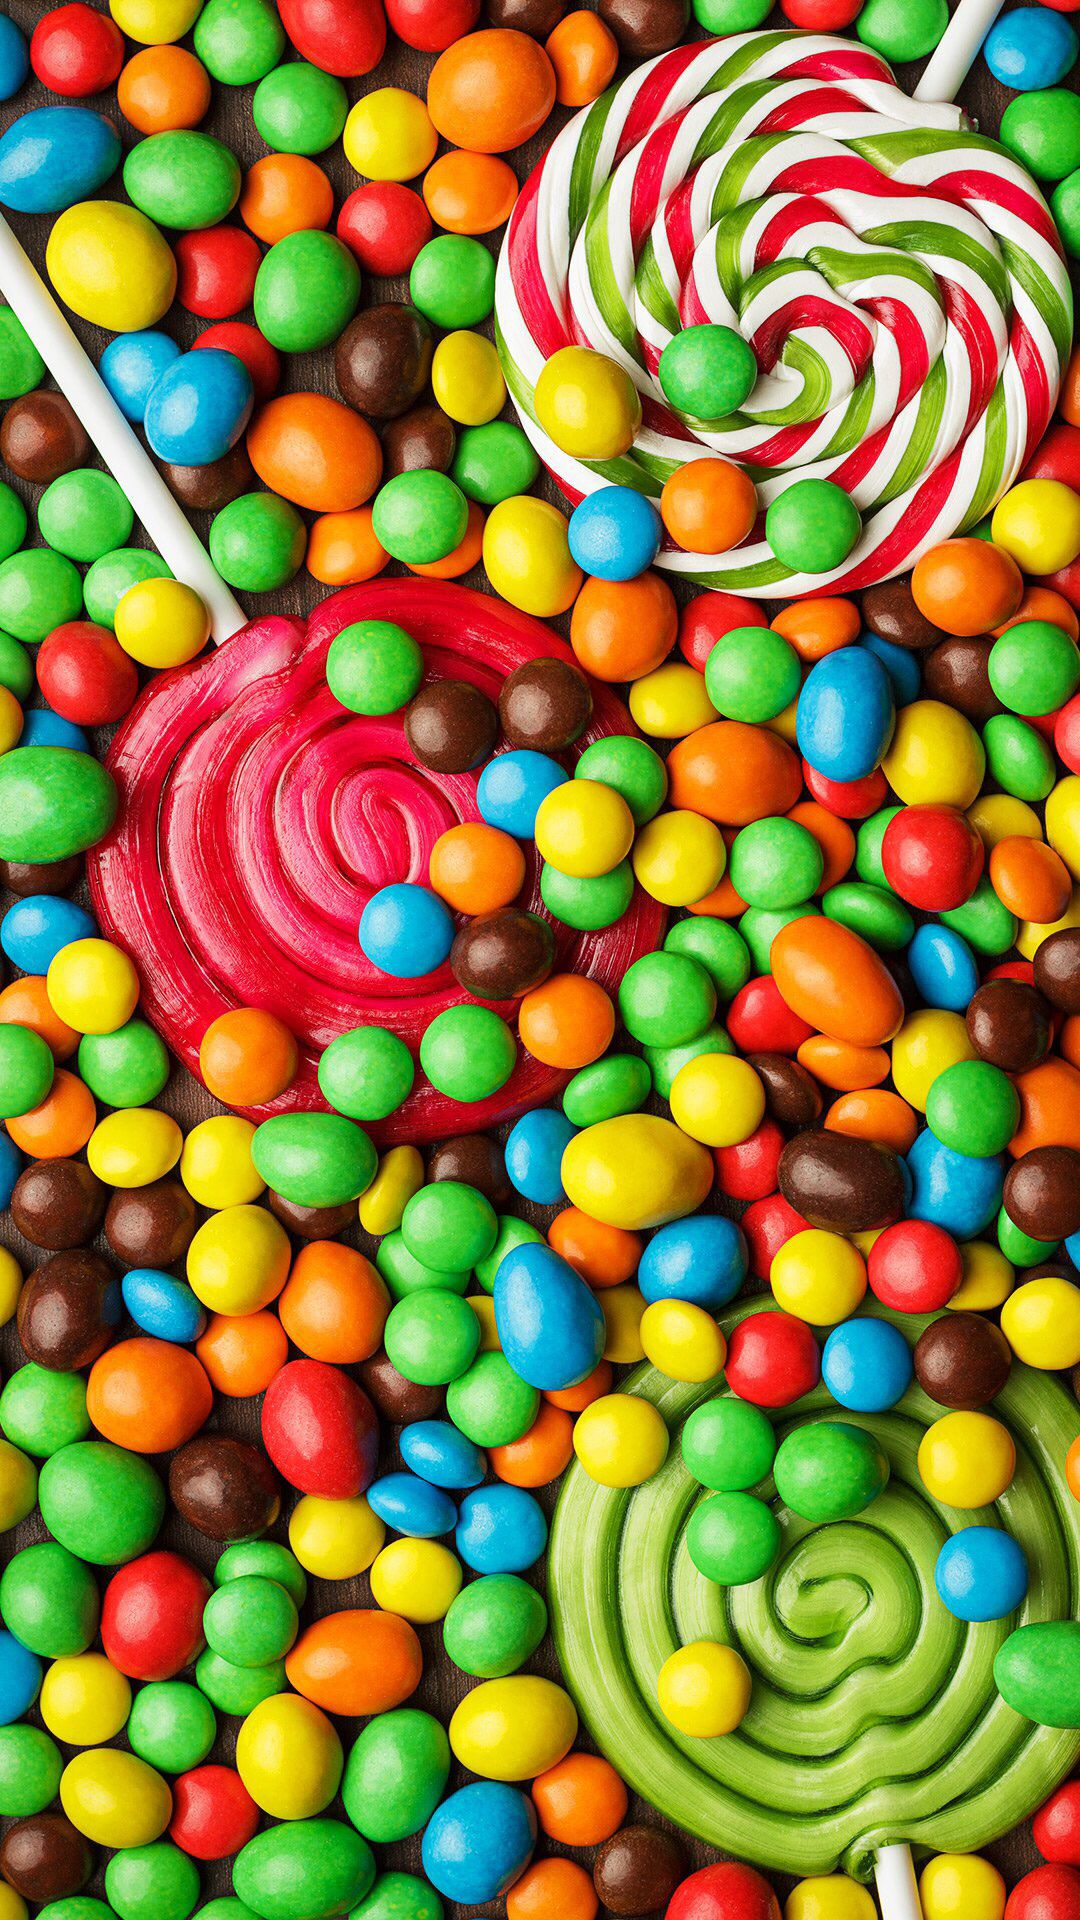 Candy Food Wallpaper Colorful Candy Iphone Wallpaper